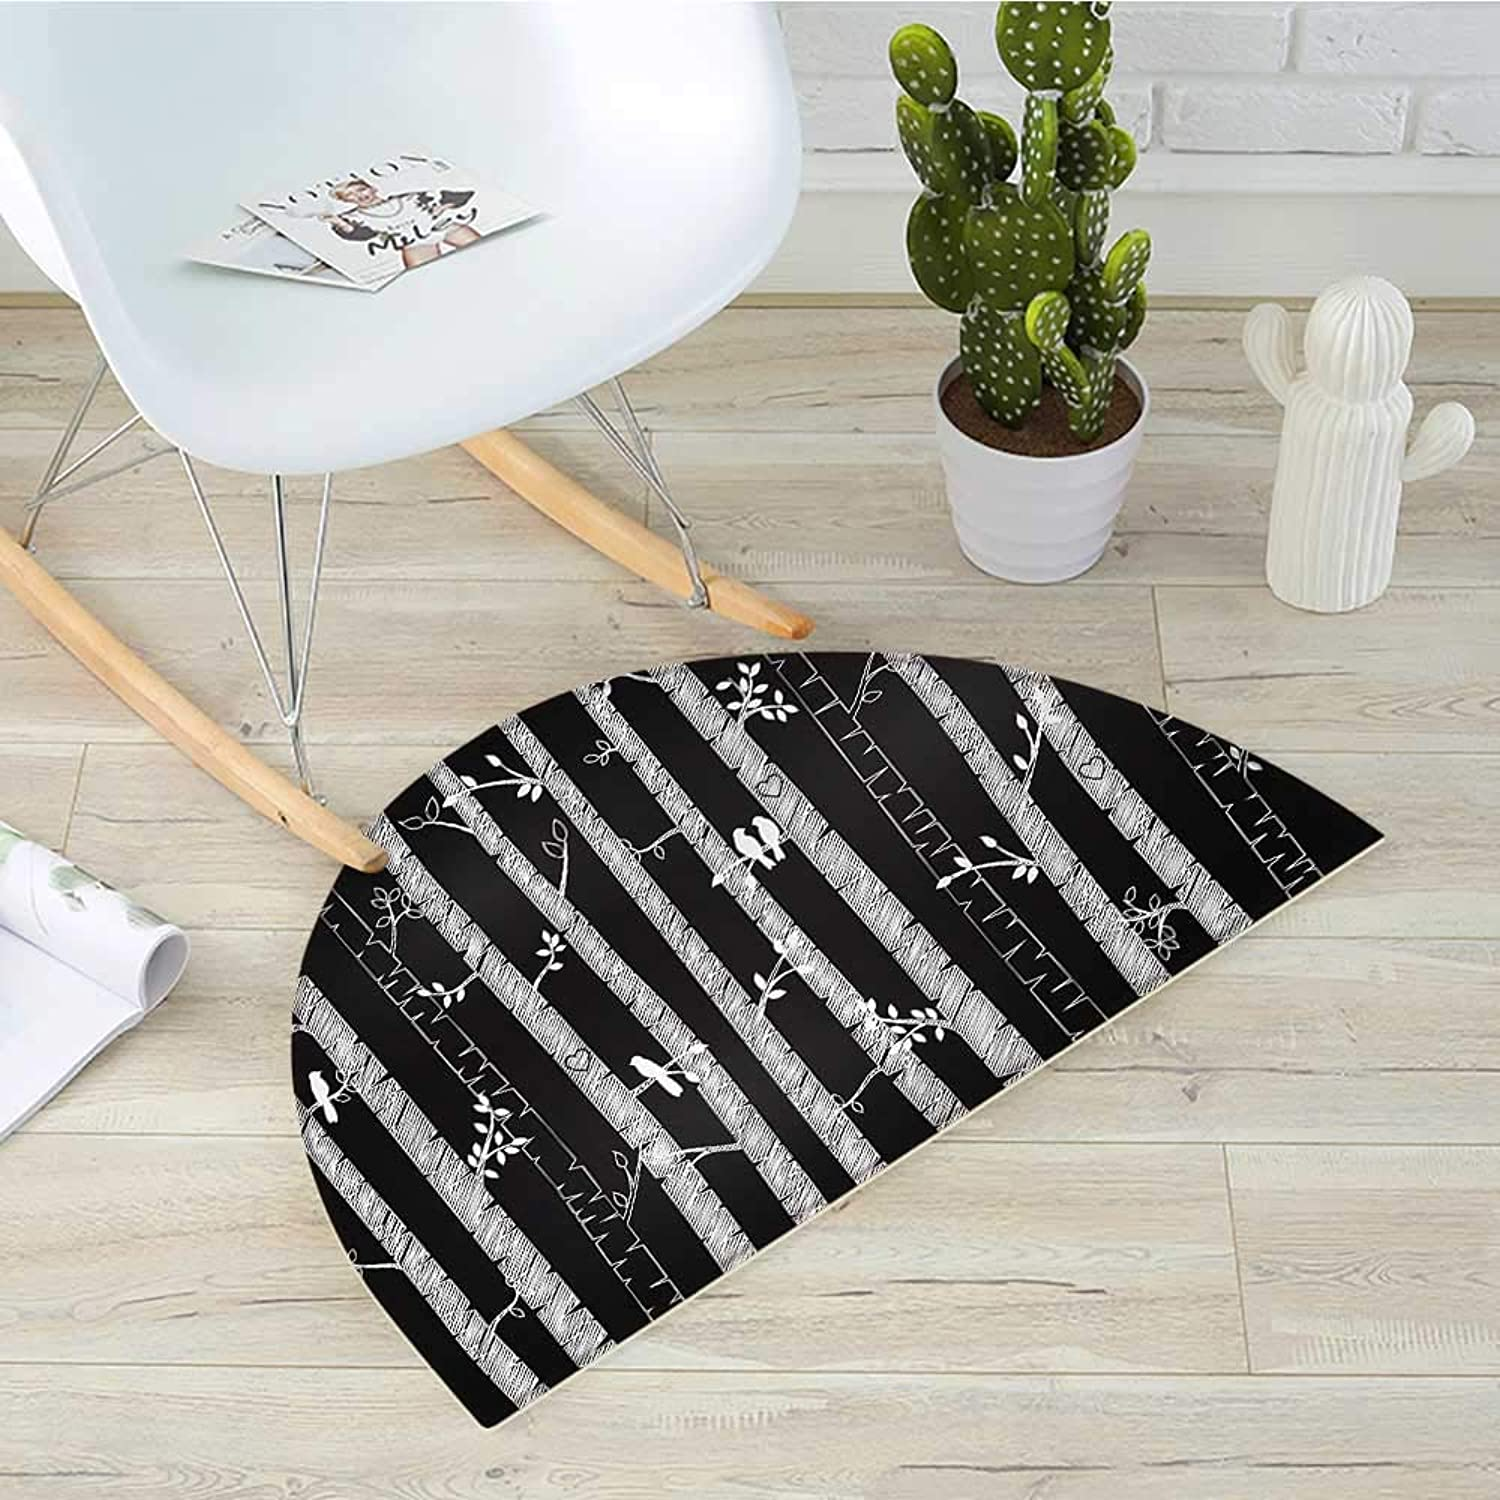 Black and White Semicircle Doormat Sketch Style Jungle with Long Tree Trunks and Birds Autumn Nature Doodle Halfmoon doormats H 43.3  xD 64.9  Black White